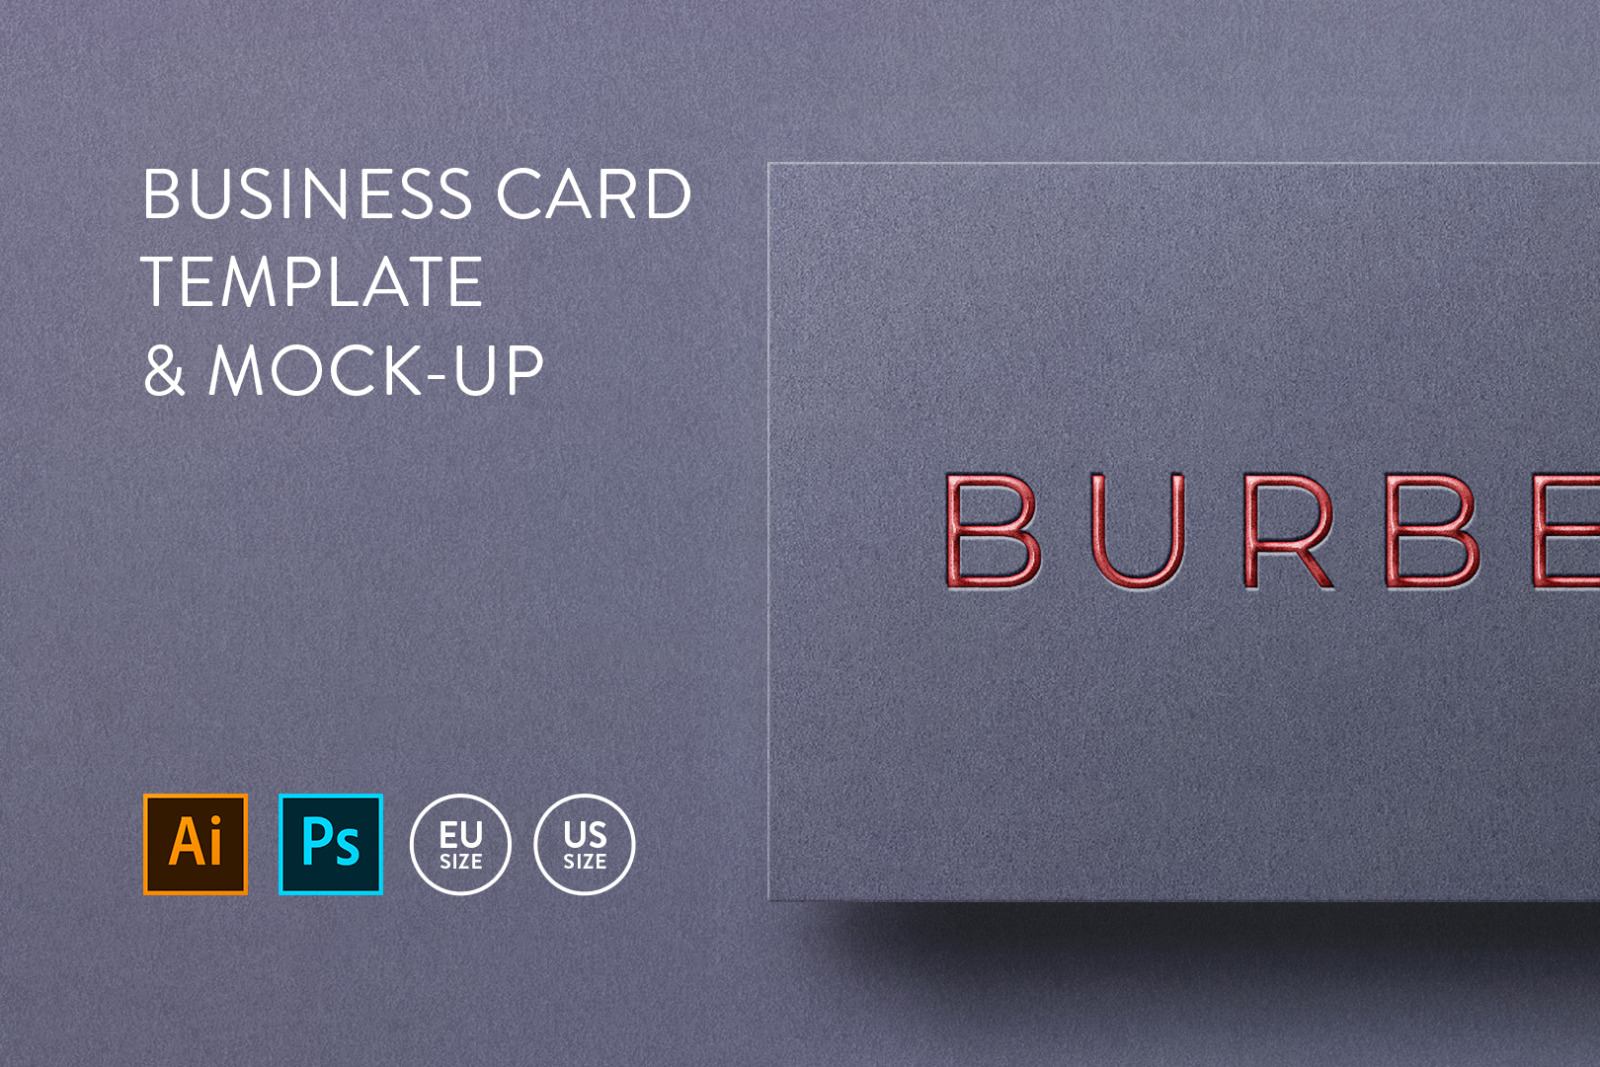 Business card Template & Mock-up #5